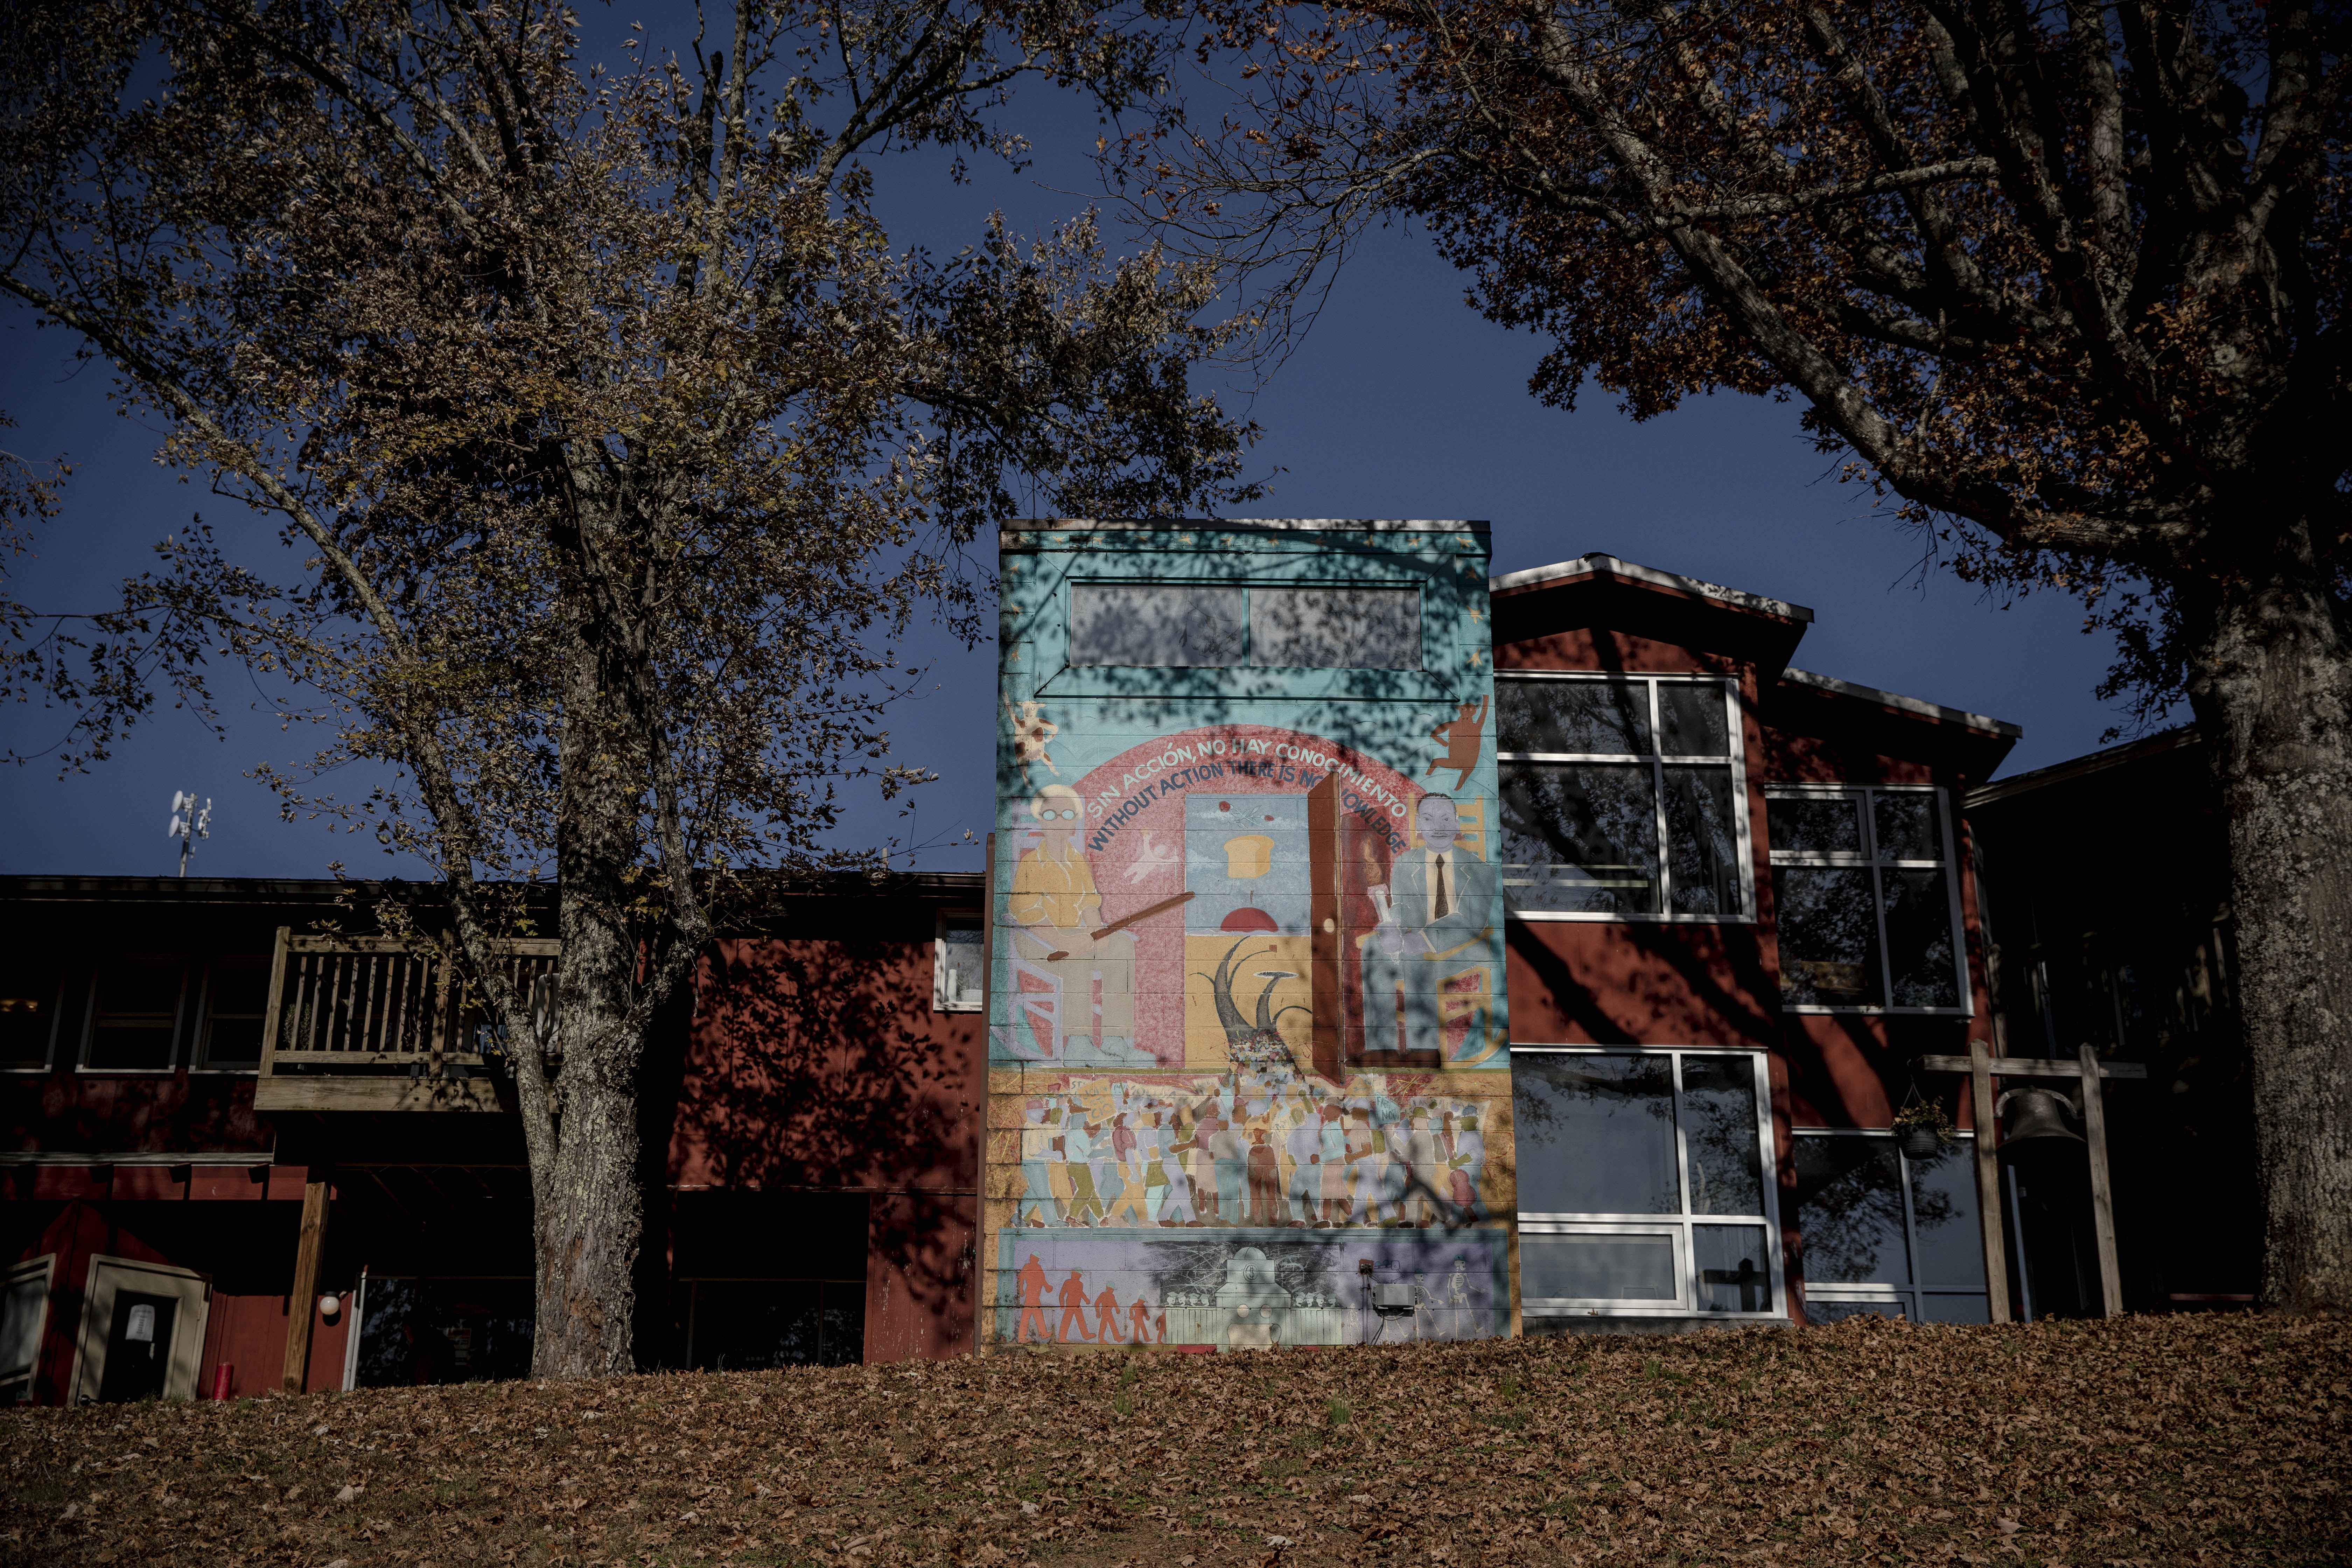 November 18, 2019 - New Market , TN: A view of a mural at the Highlander Research and Education Center.